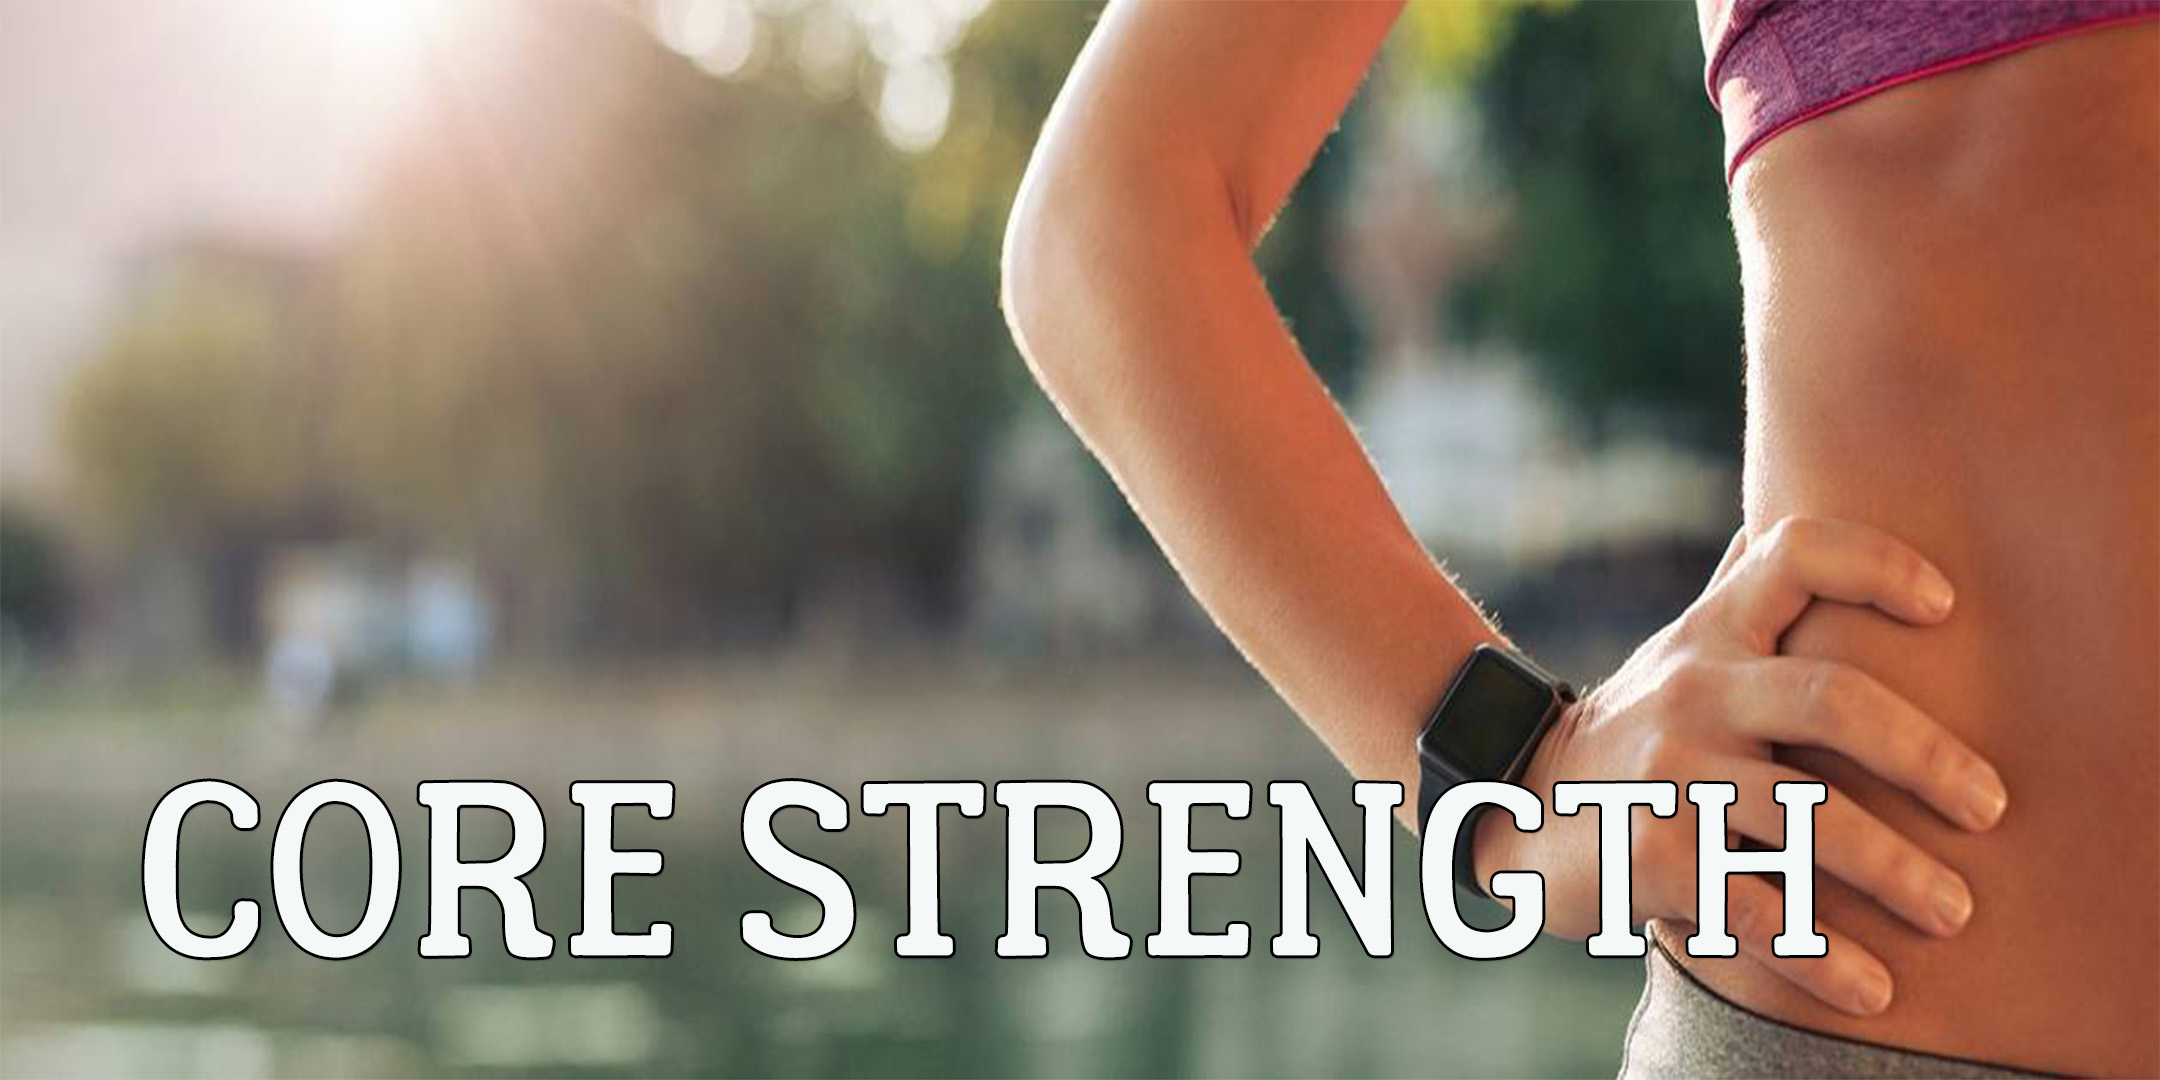 Core Strength - Essential for your healthy movement